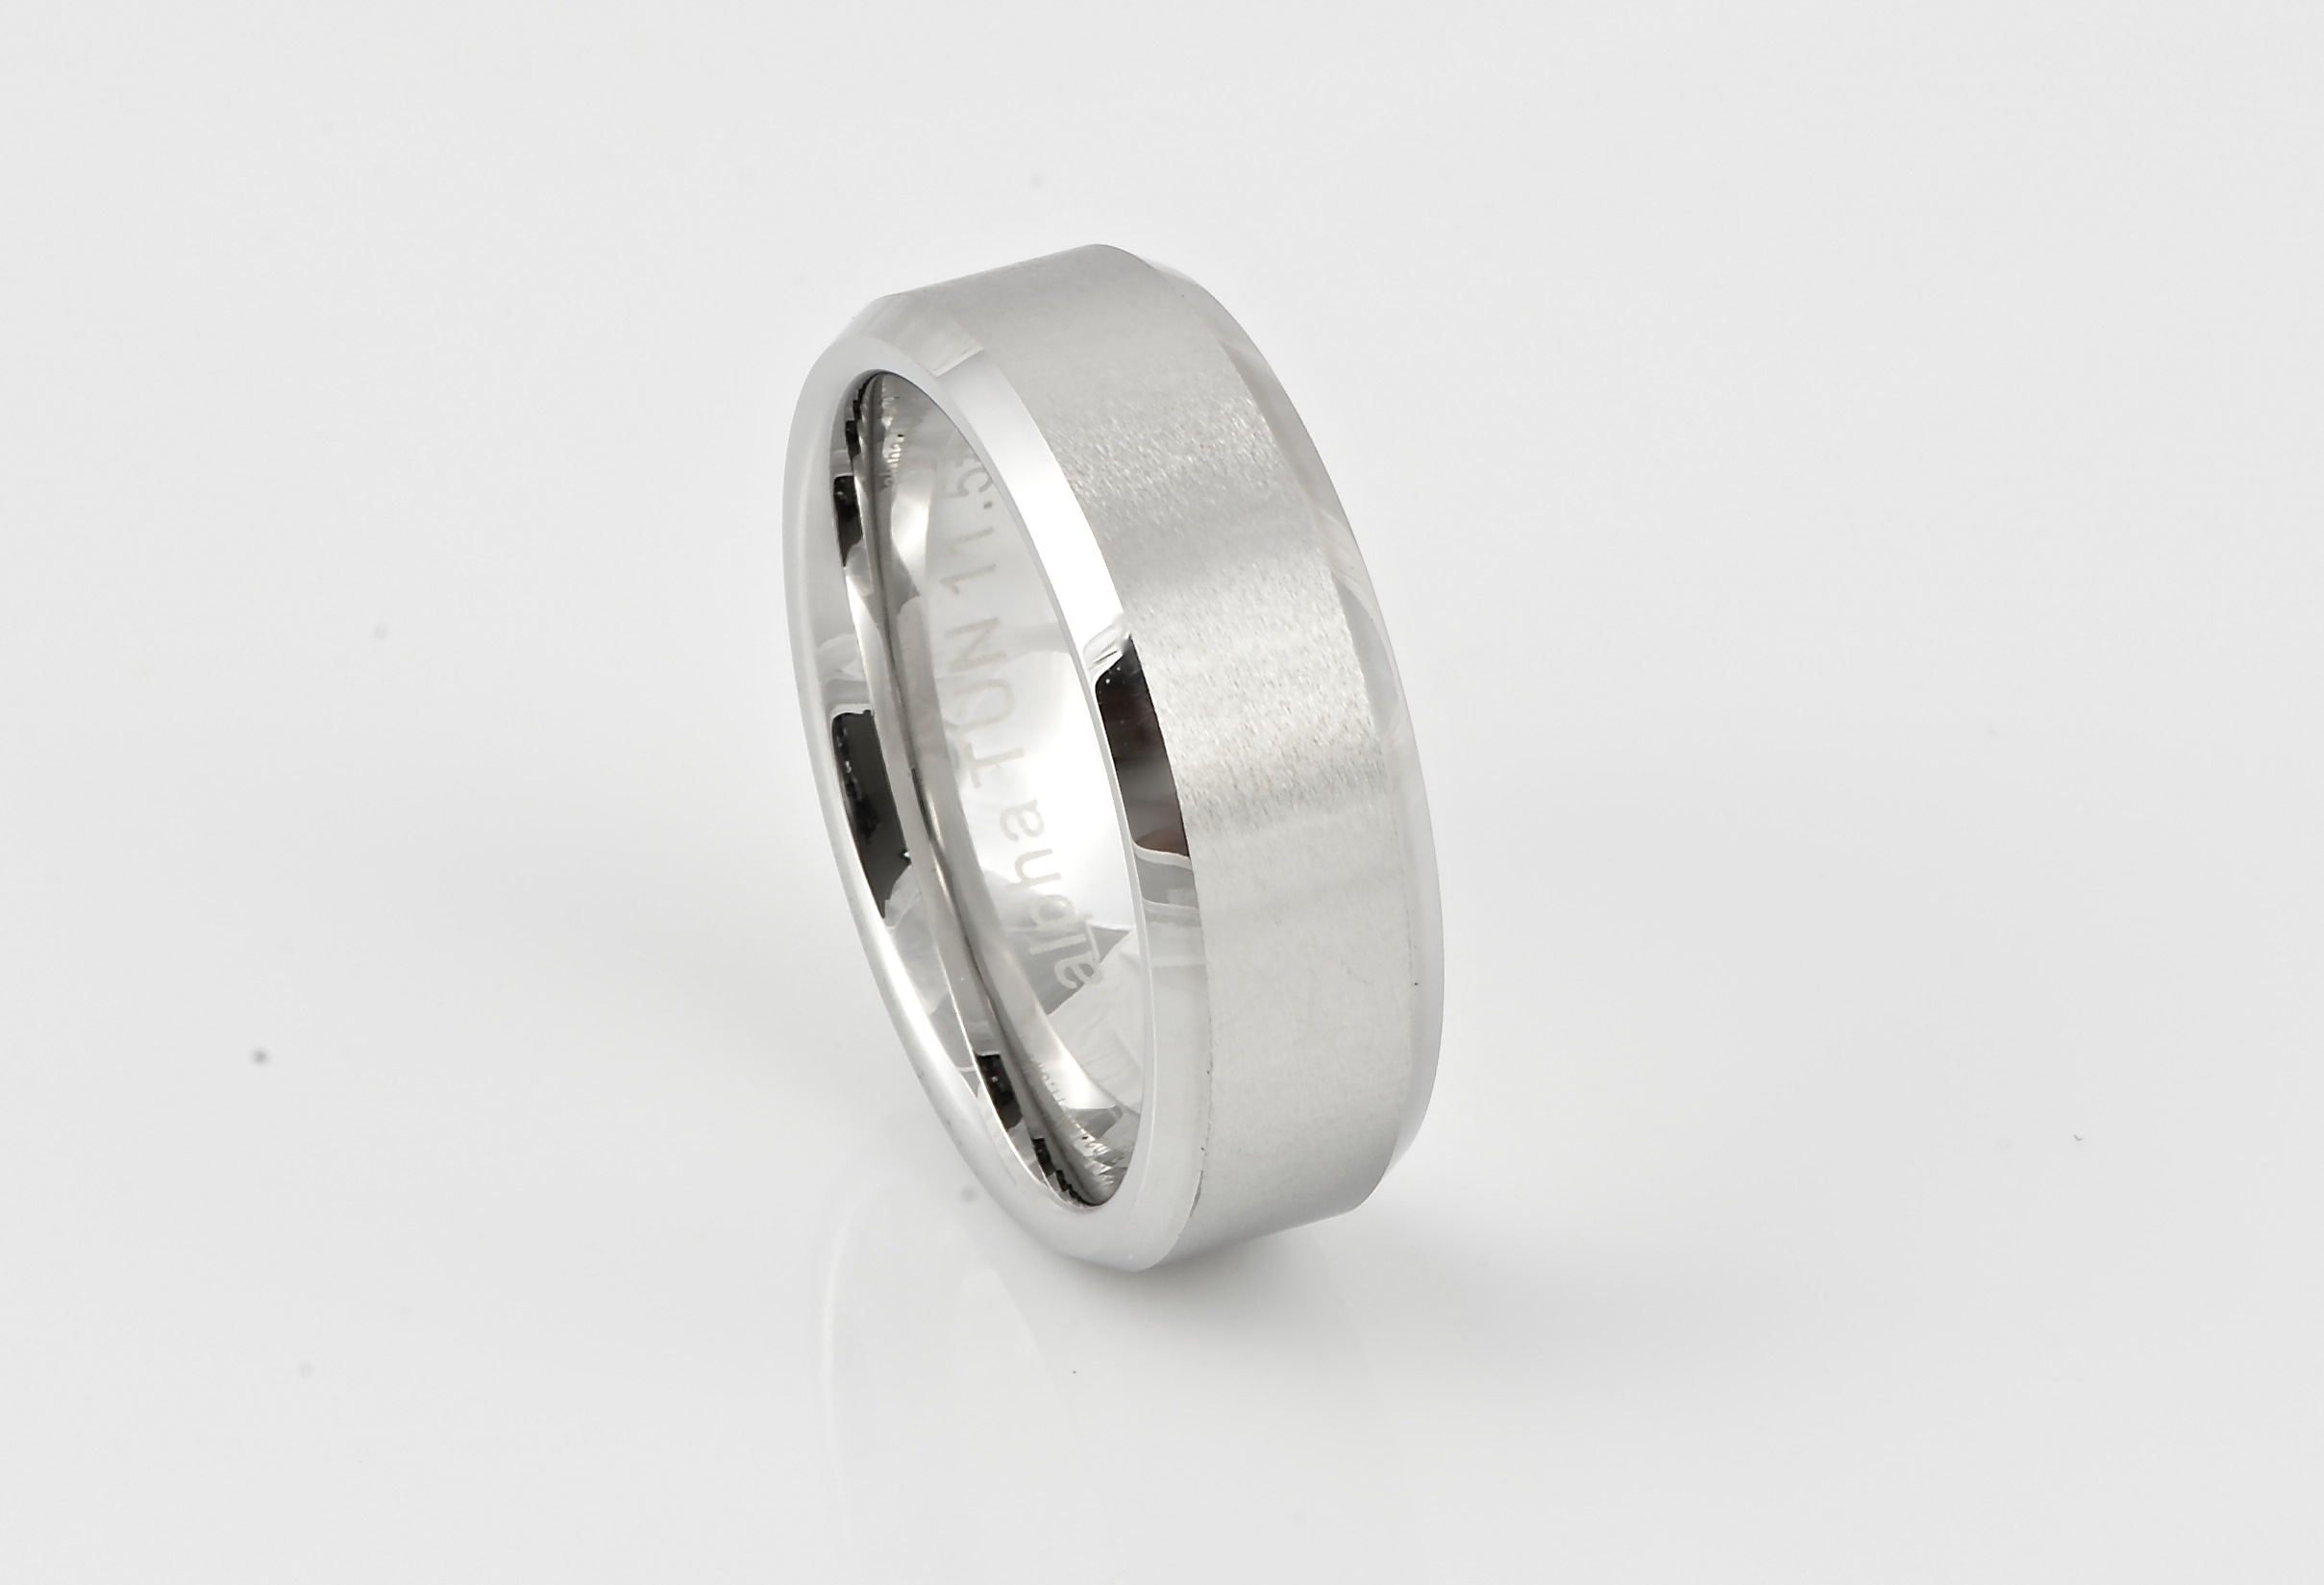 titanium fresh ring concave rings black beautiful of wedding s mens bands coolest tungsten carbide men elegant